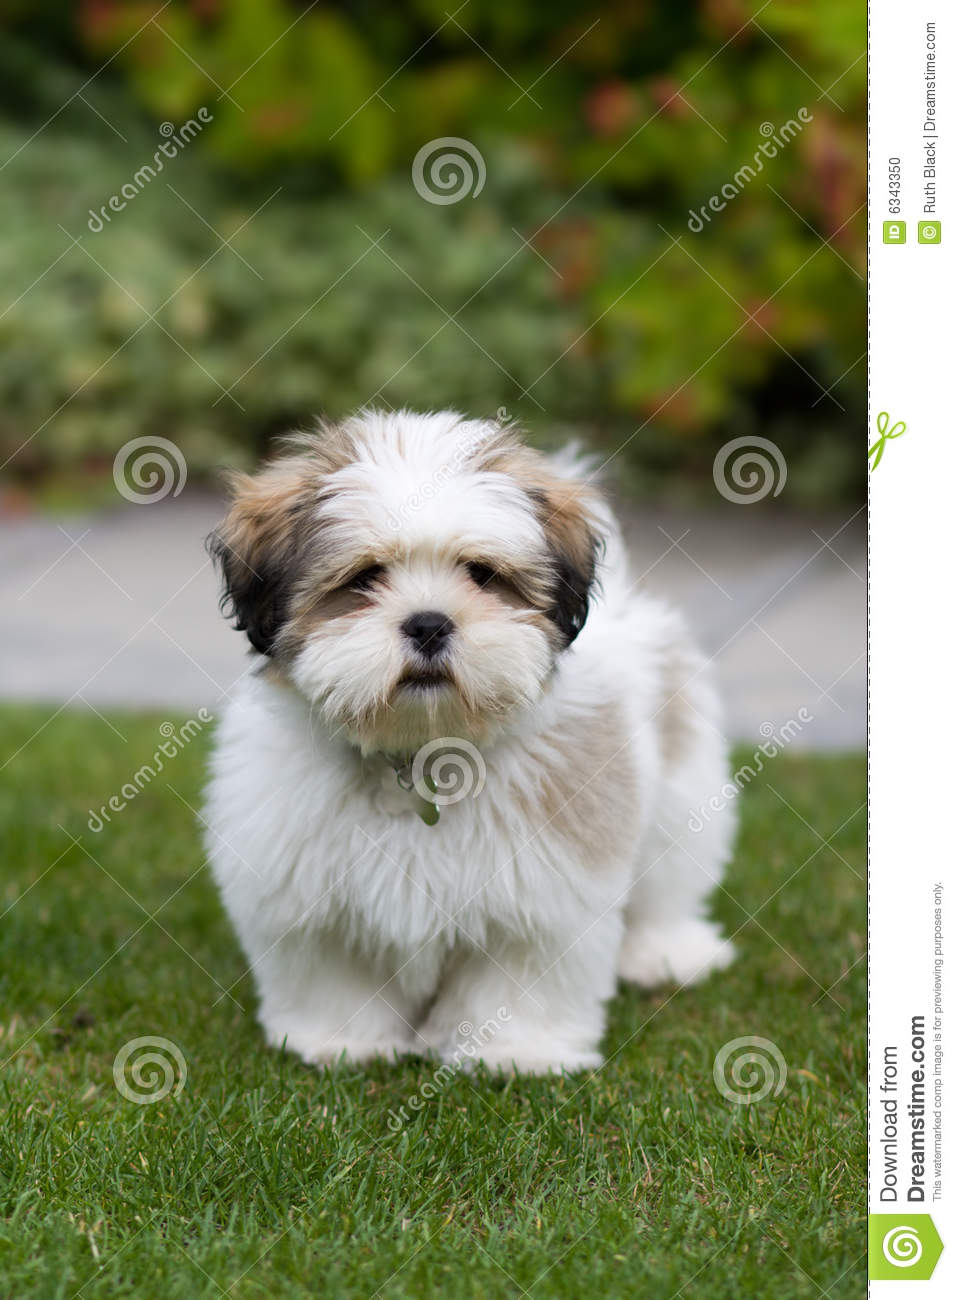 Inquisitive 3 month old lhasa apso puppy.